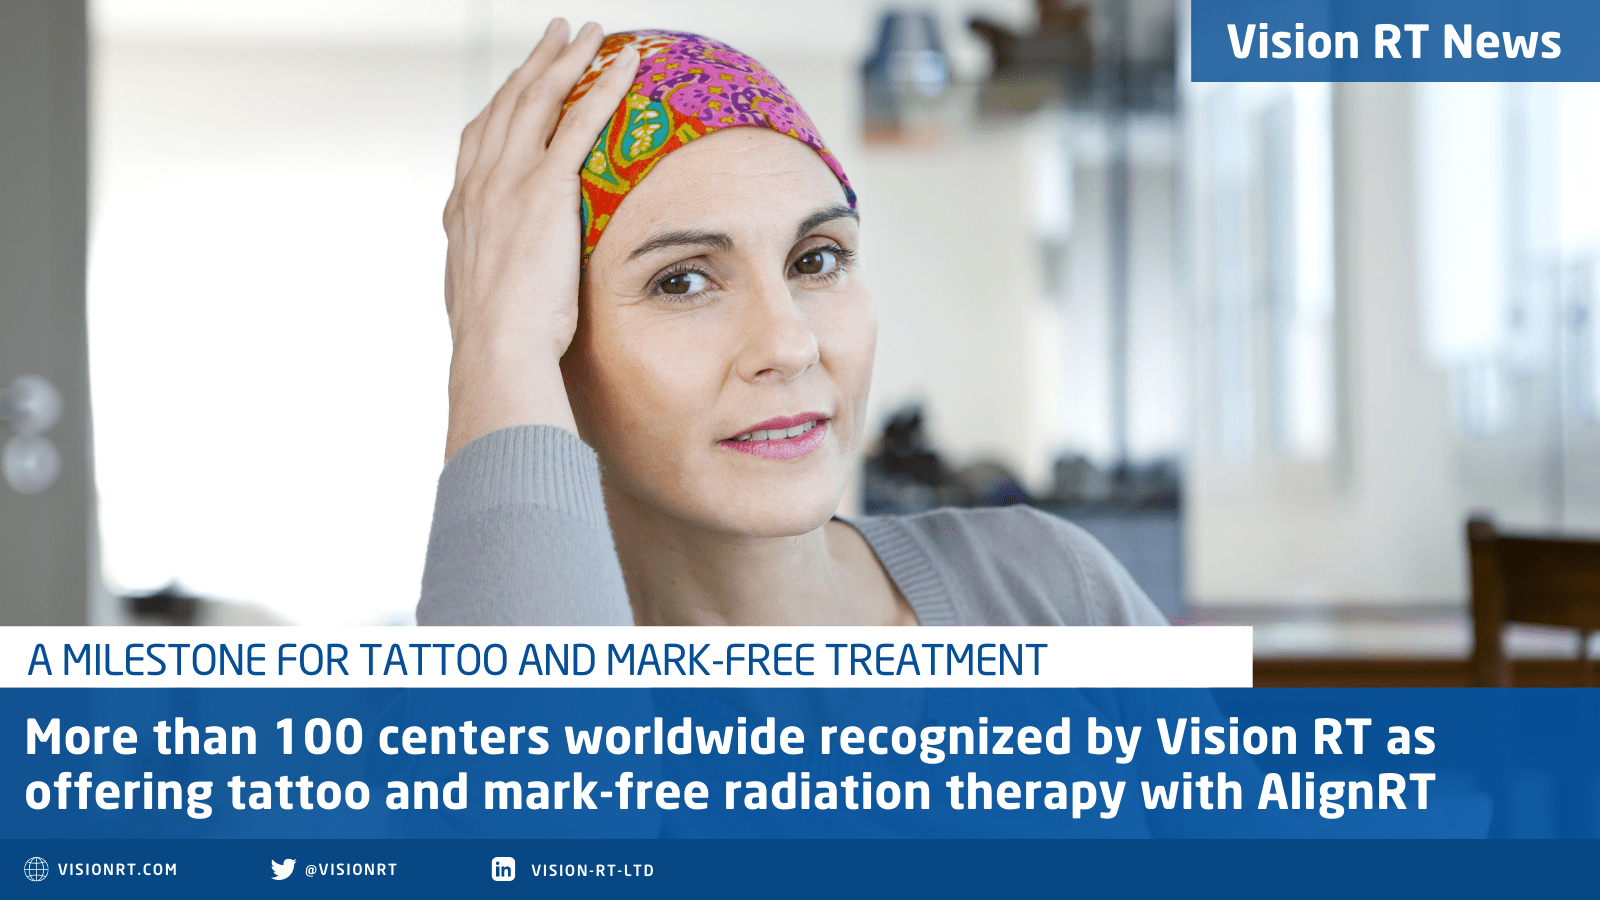 100 tattoo and mark-free radiation therapy centers with AlignRT technology by Vision RT